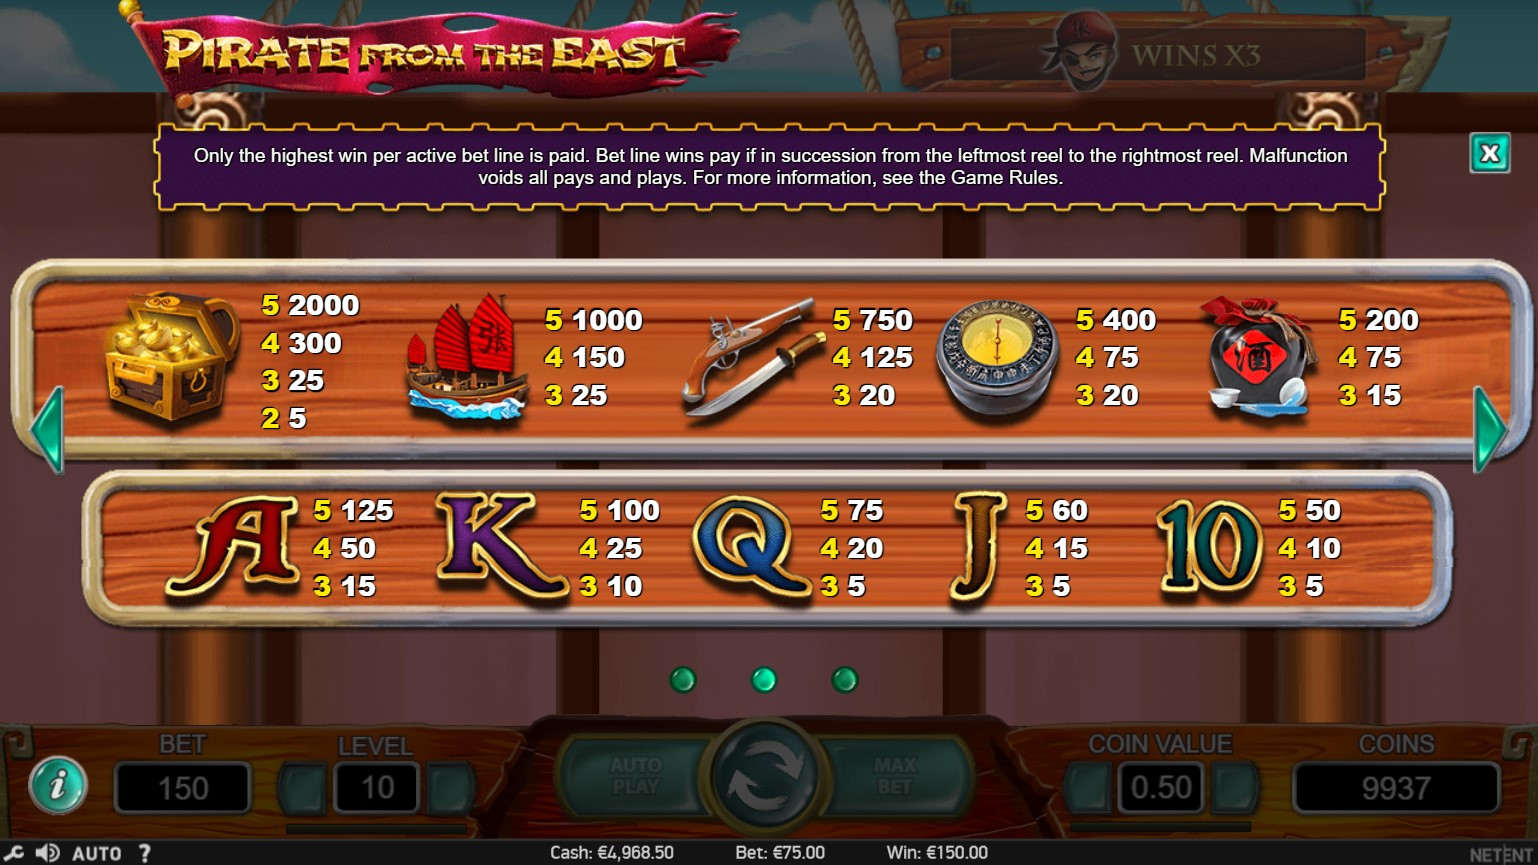 Pirate from the East Slot Paytable